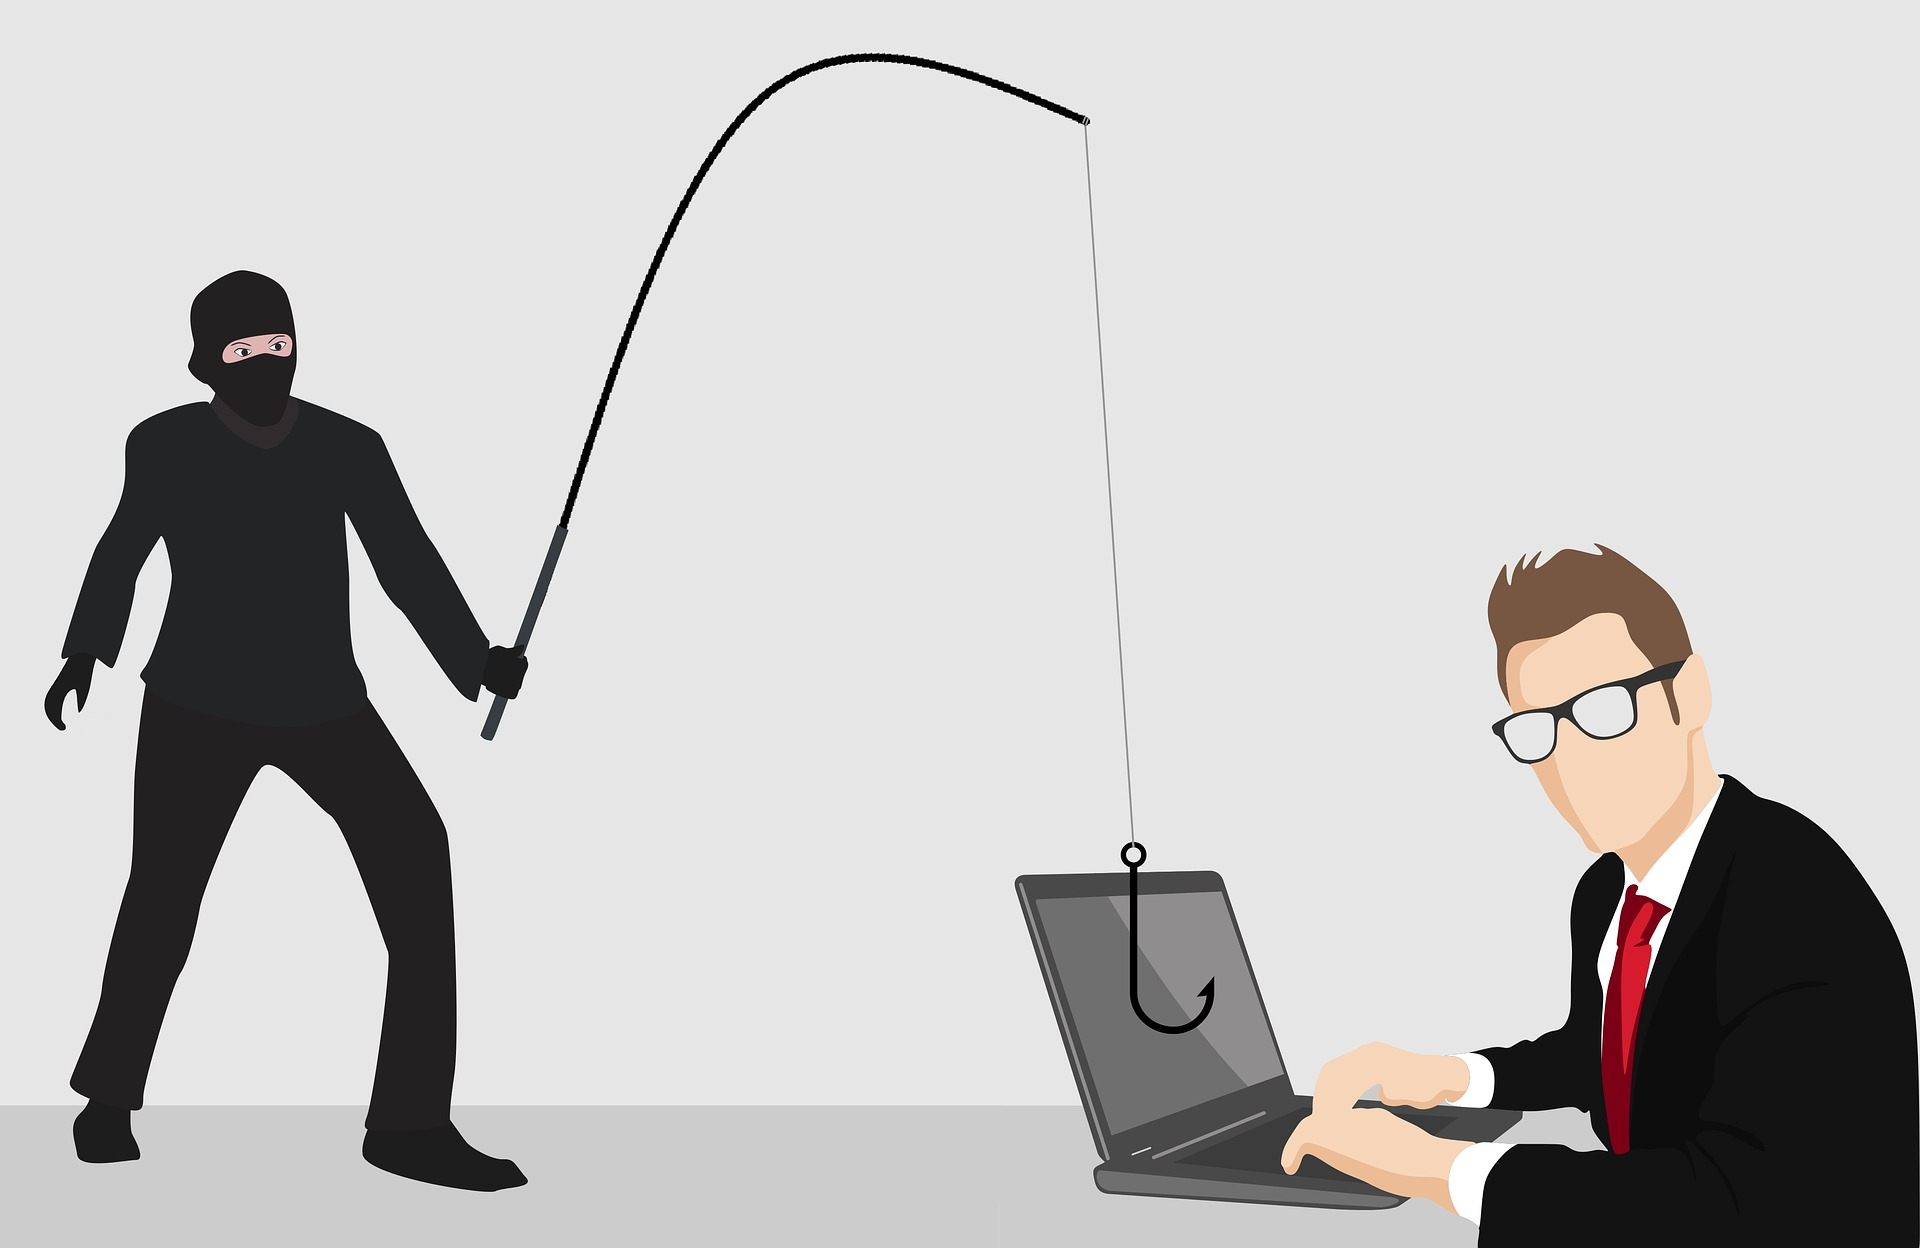 """Beware of """"Outlook There is no Internet connection"""" Phishing Scam"""